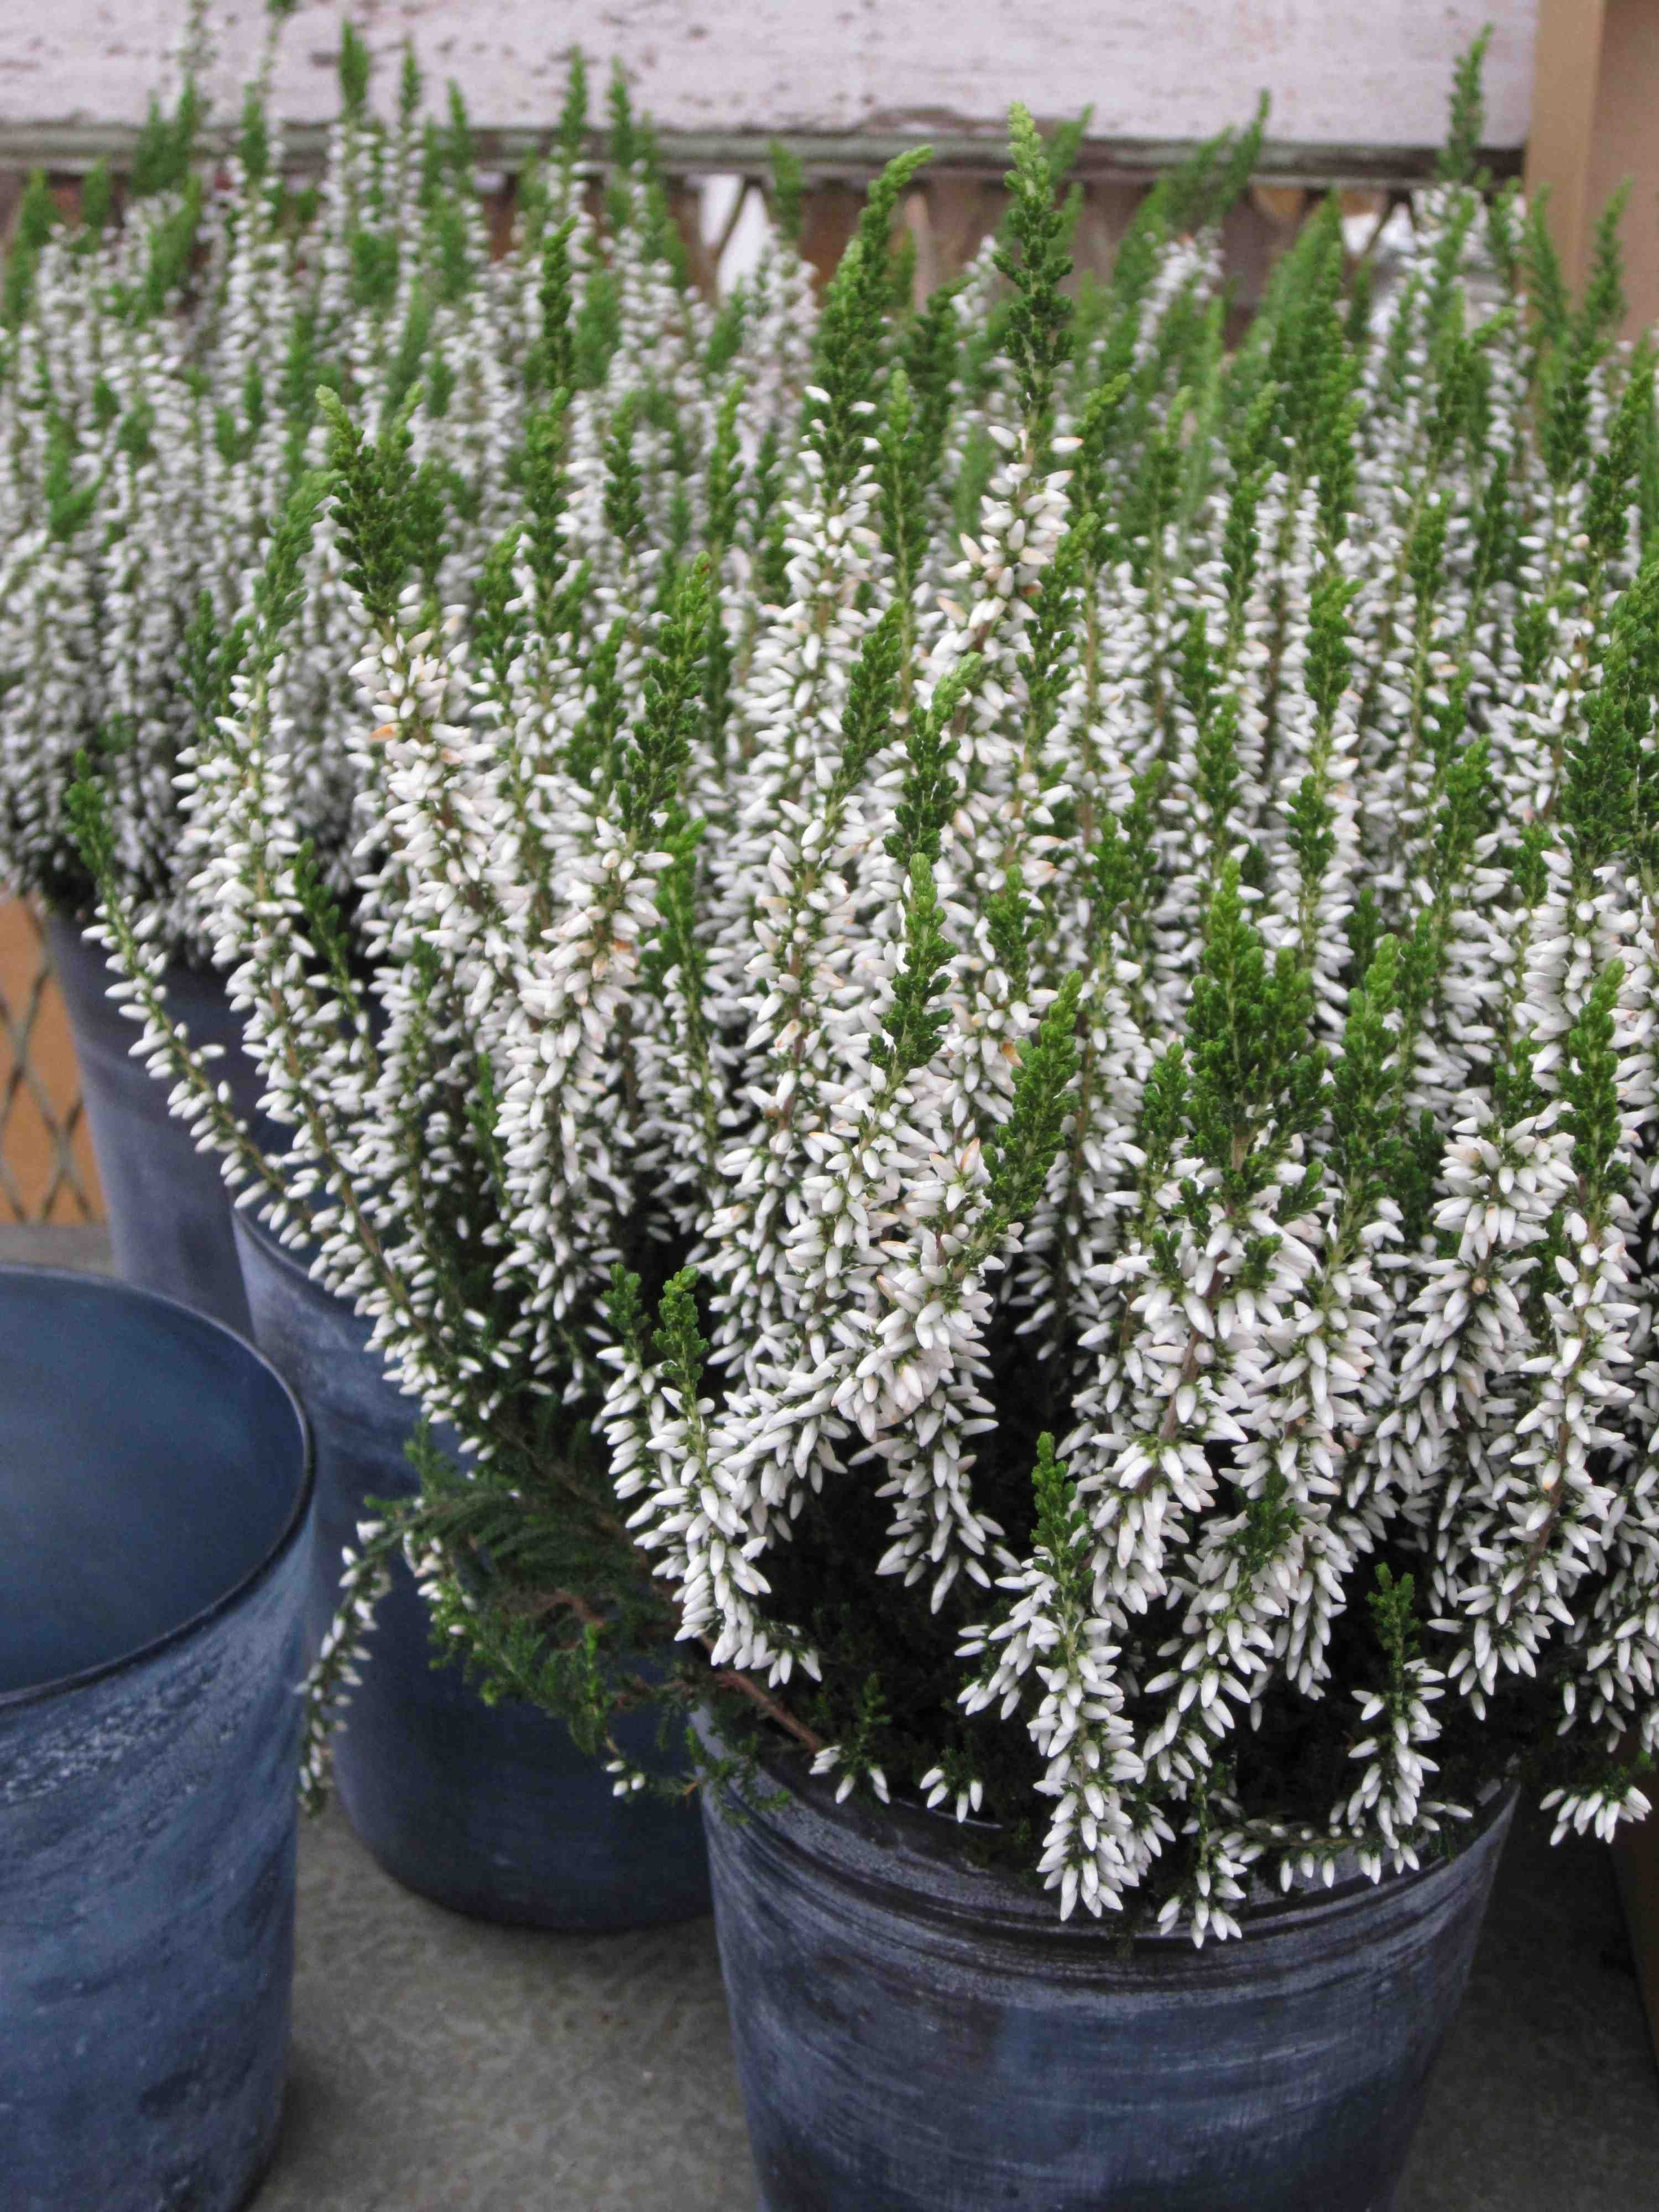 White Heather Said To Bring Good Luck We Had To Buy Plants And